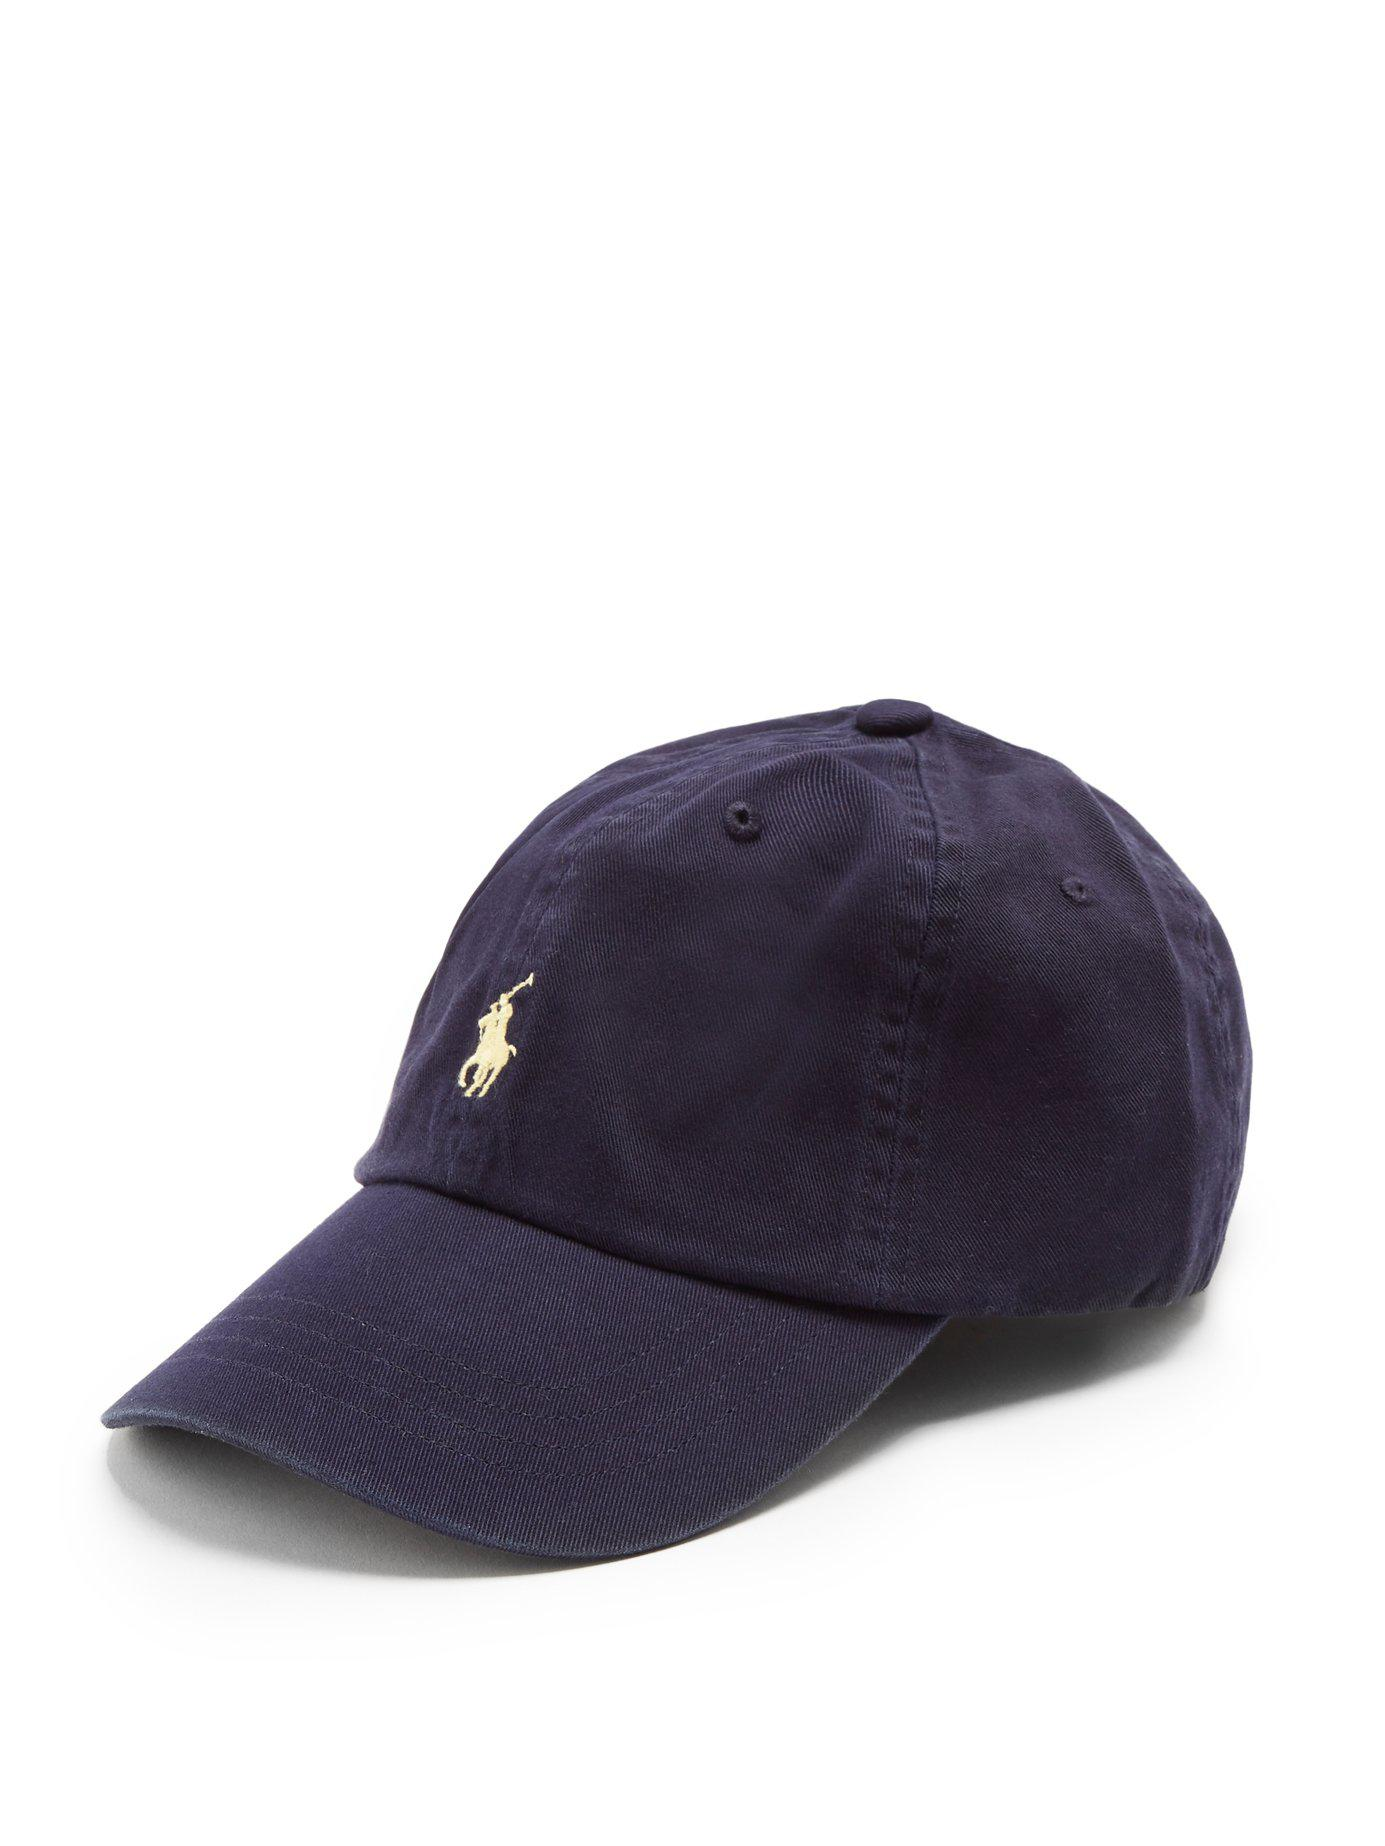 a1827bf3c52 Lyst - Polo Ralph Lauren Logo Embroidered Cotton Cap in Blue for Men